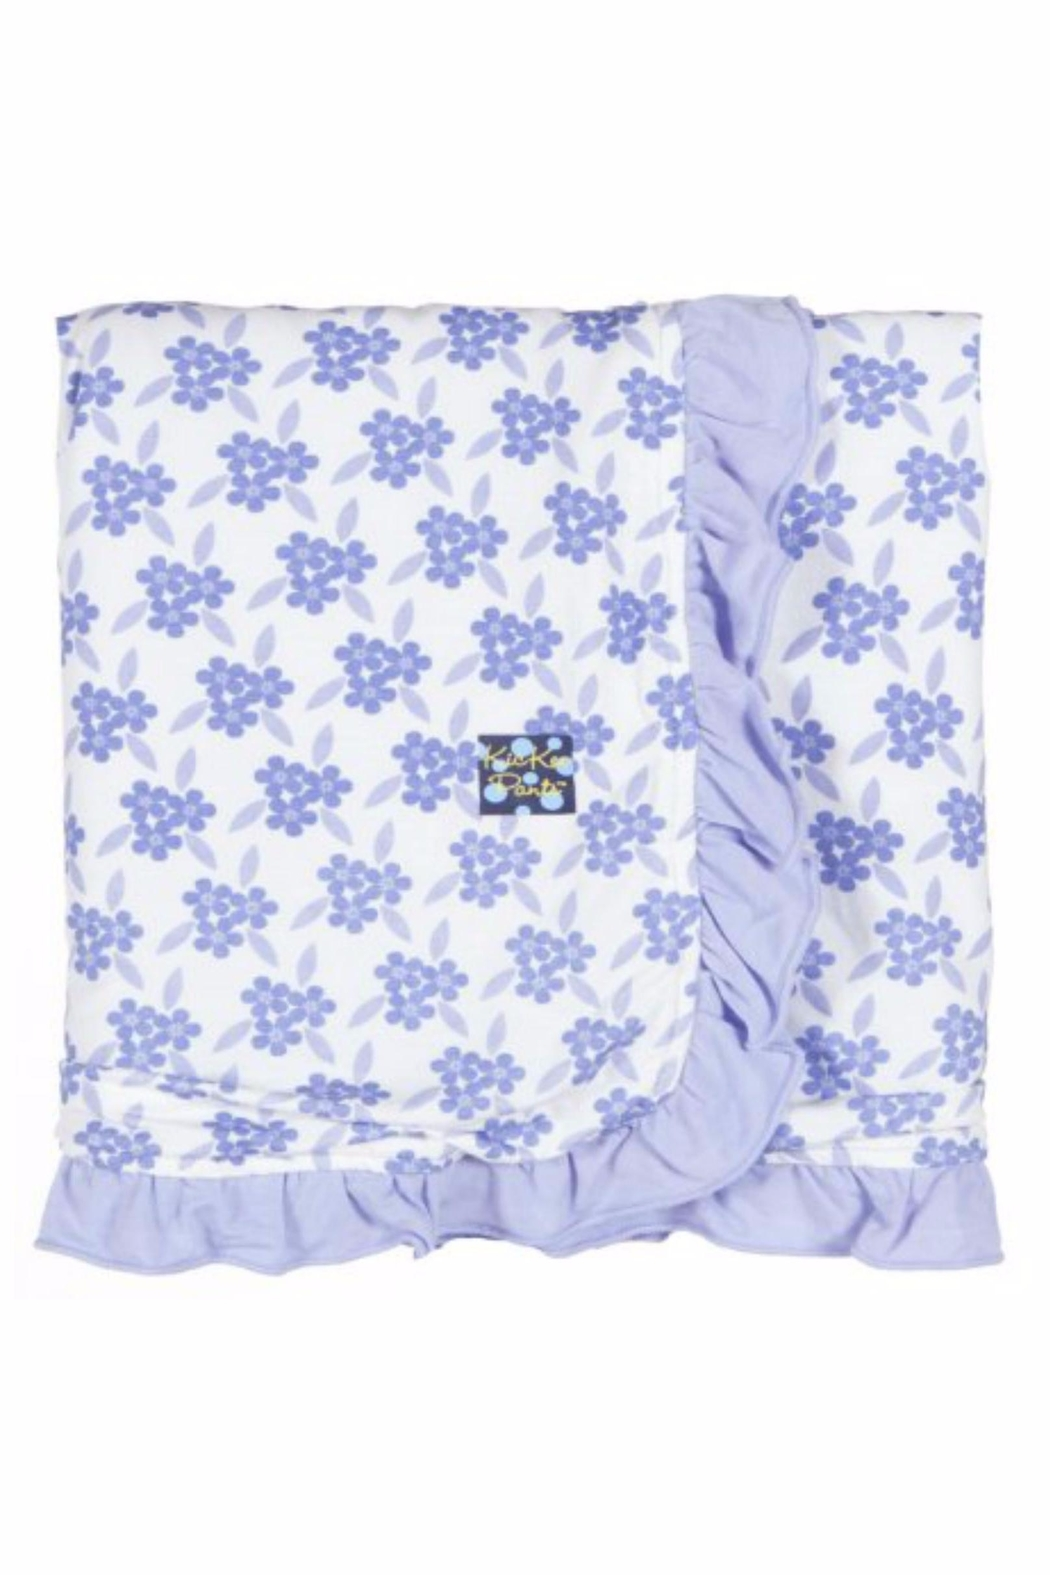 Kickee Pants Floral Stroller Blanket From Kansas By